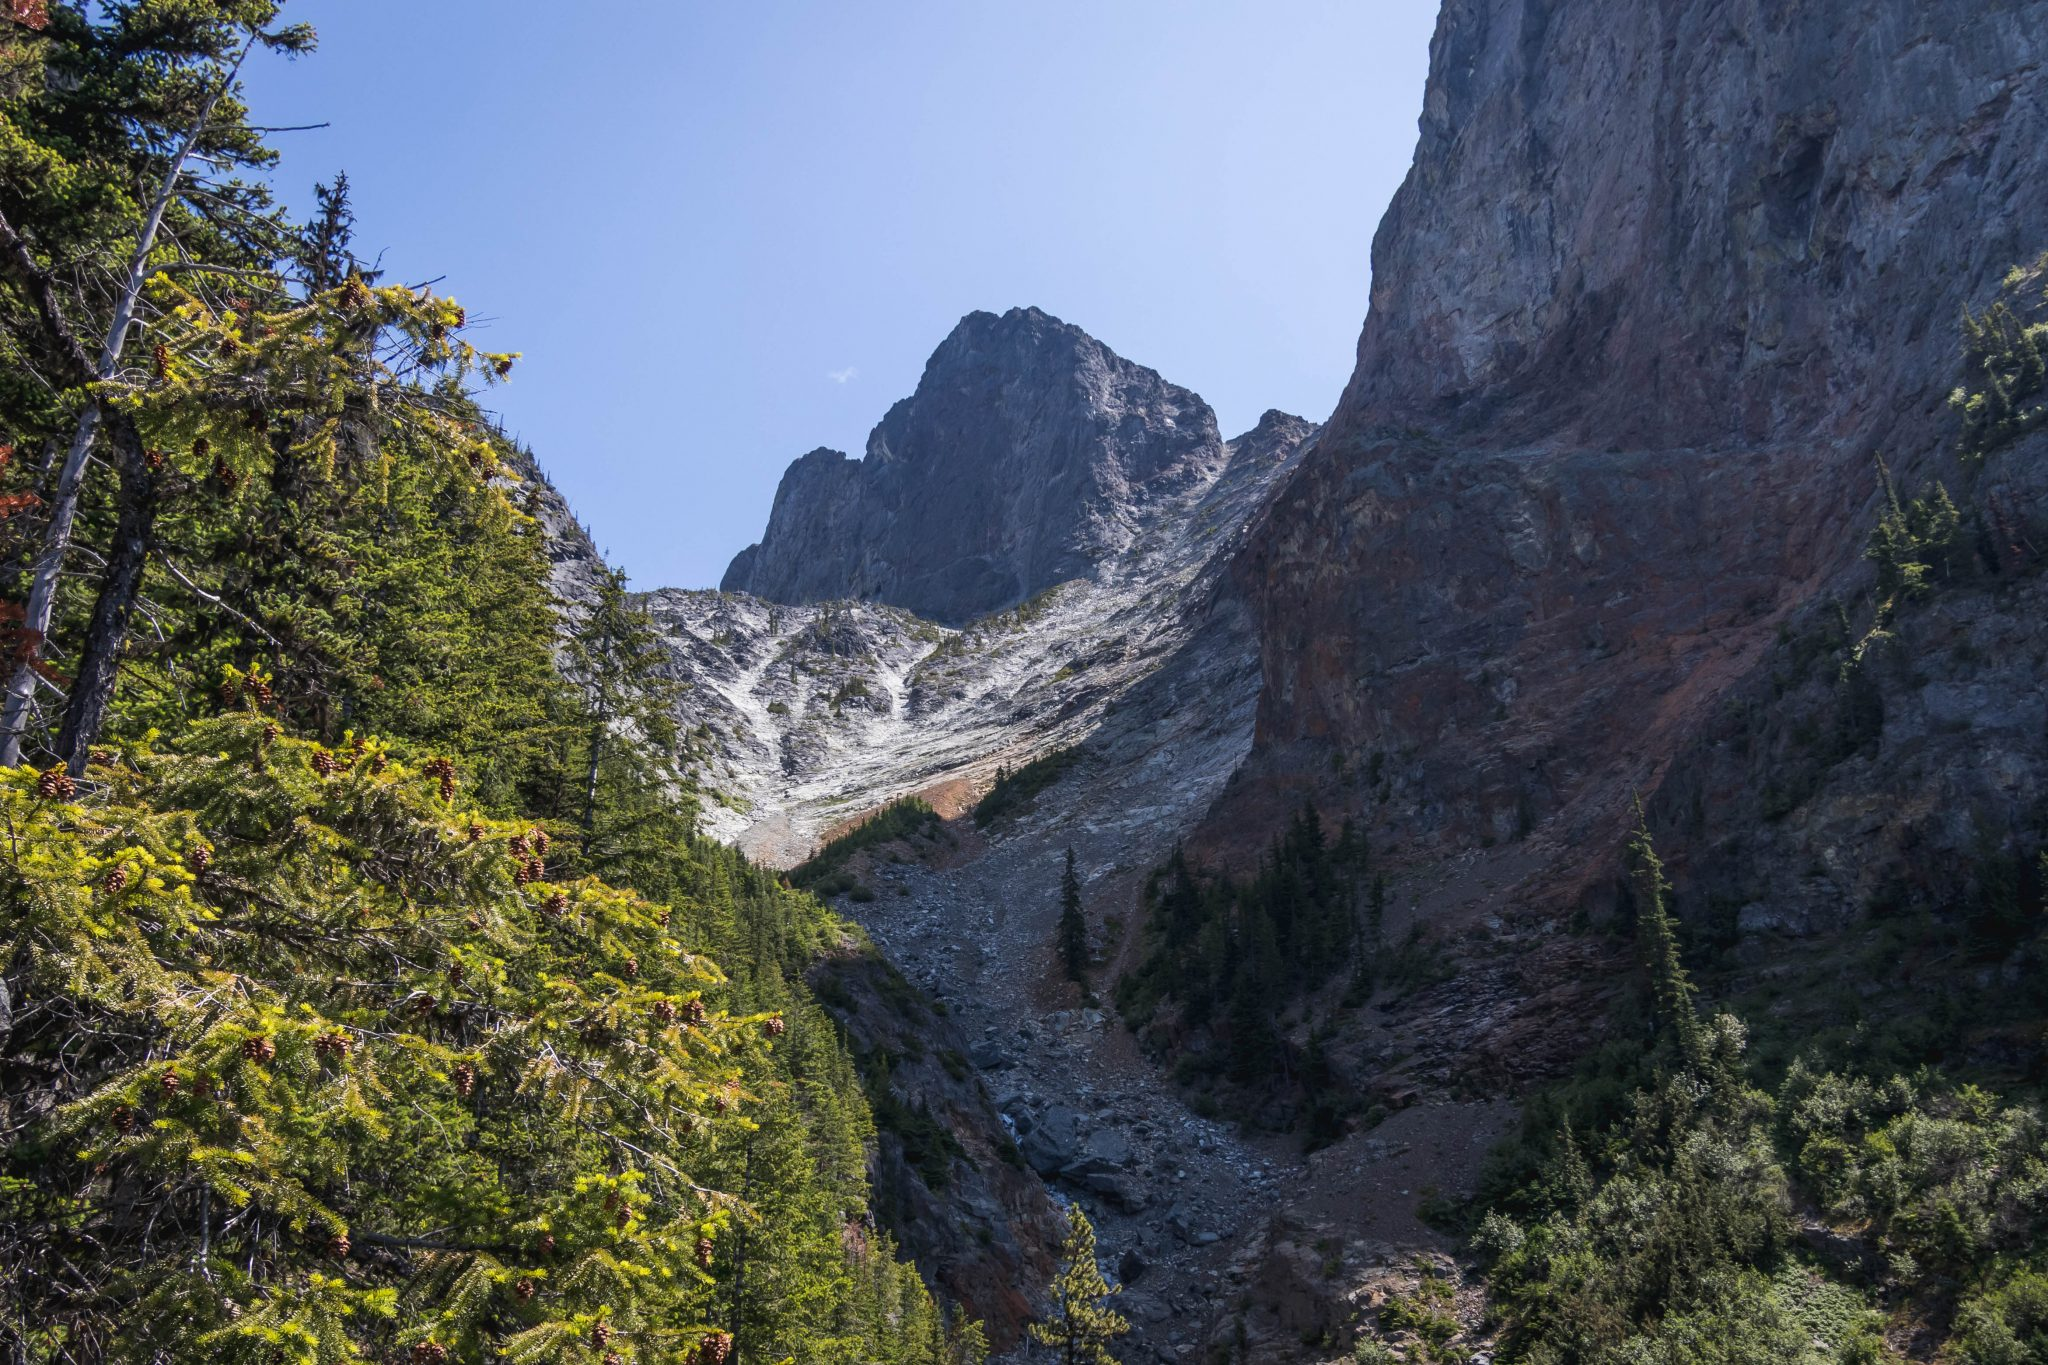 Hozomeen Mountain South Peak / 霍佐民山南峯